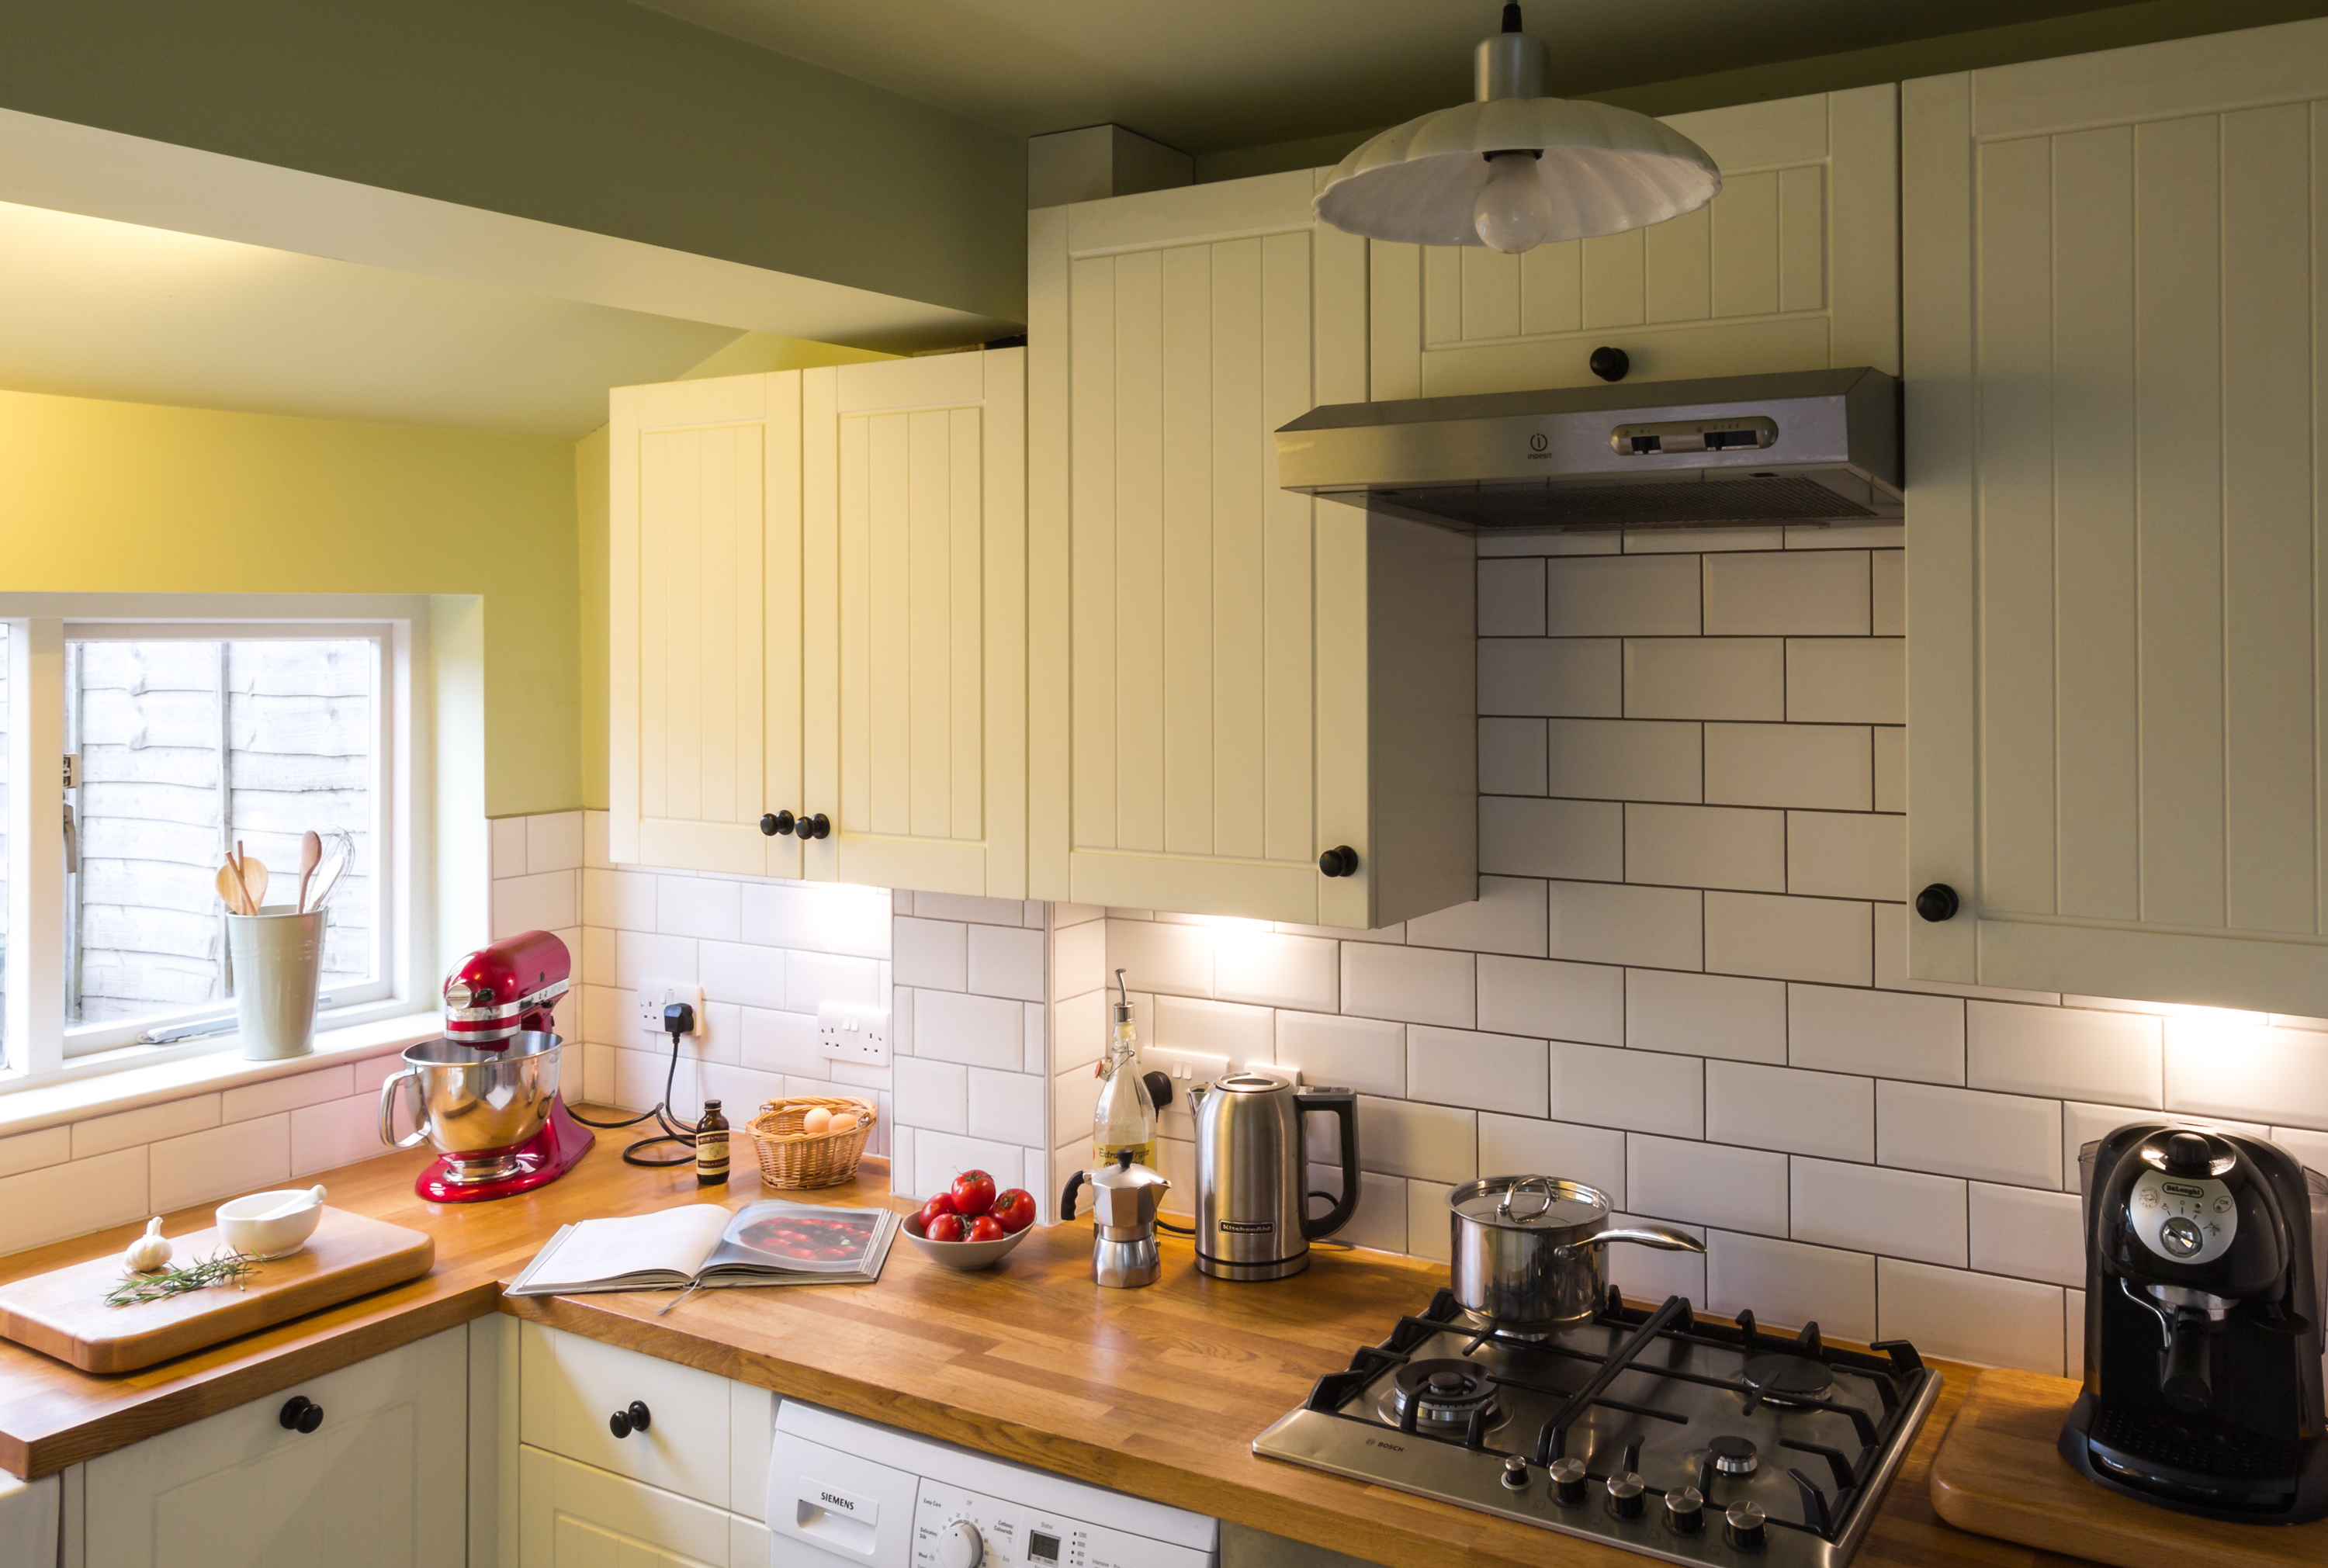 Kitchen Tiles Ideas Pictures Cream Units fine white kitchen units wood worktop with wooden worktops l on